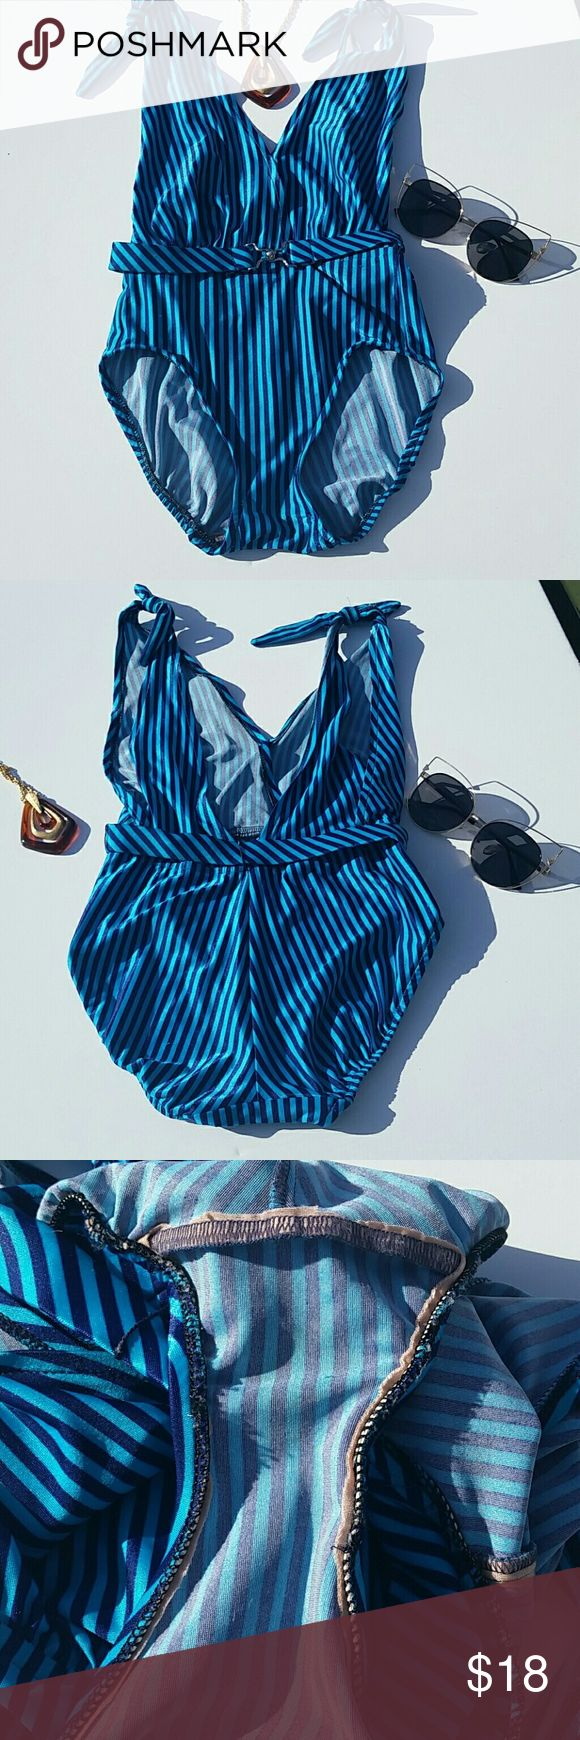 RETRO VINTAGE SWIMSUIT Retro vintage swimsuit. Turquoise and royal  vertical stripes. 70's babe with a touch of 90's club kid.  Protective linning cut out. Made in the USA Petticord label. VINTAGE  Swim One Pieces